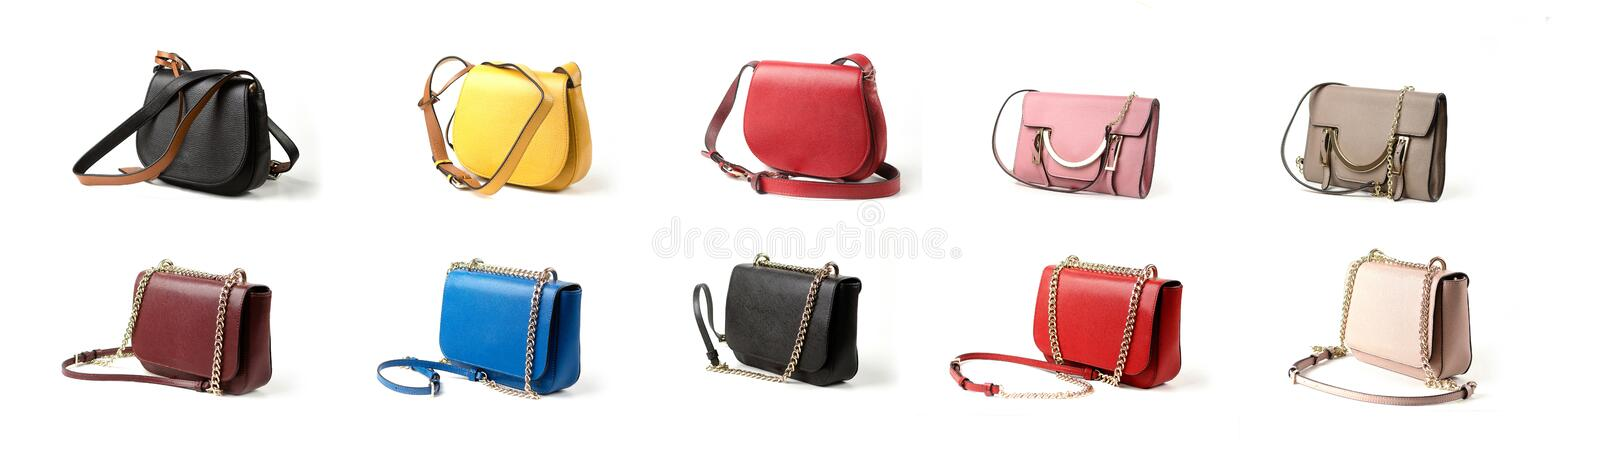 Group of women leather handbag isolated on white background stock photo